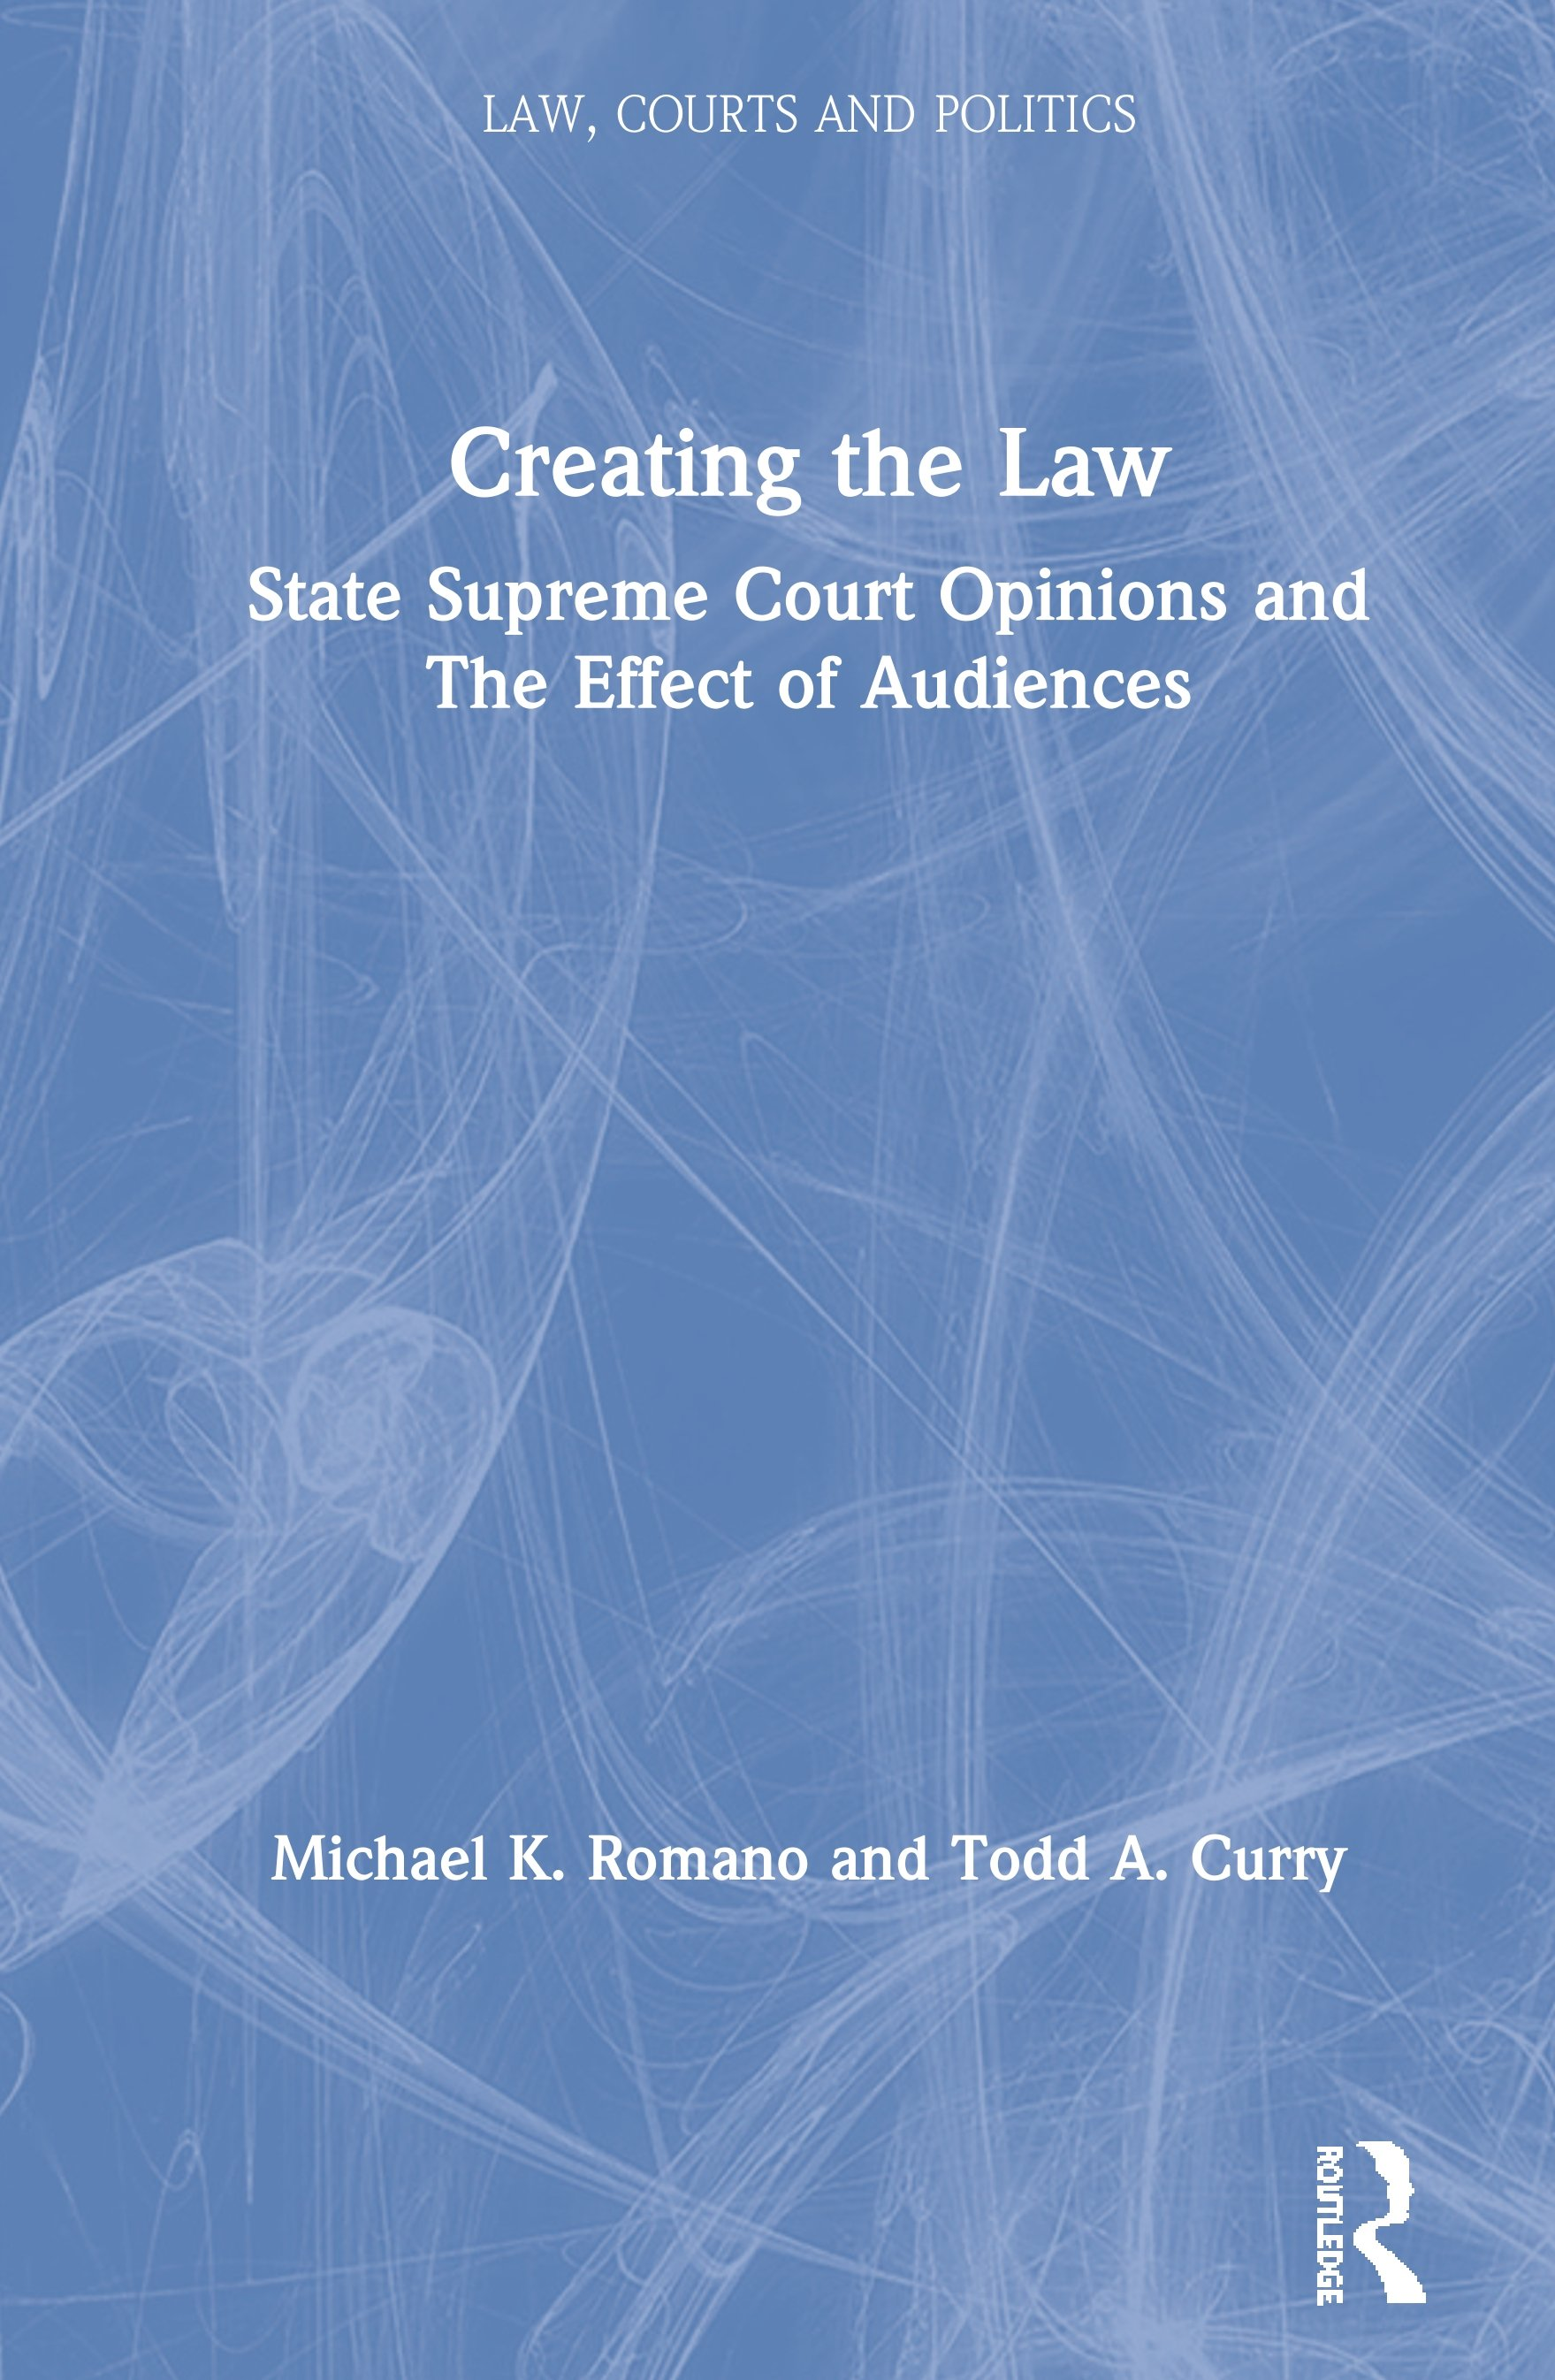 Creating the Law: State Supreme Court Opinions and The Effect of Audiences book cover